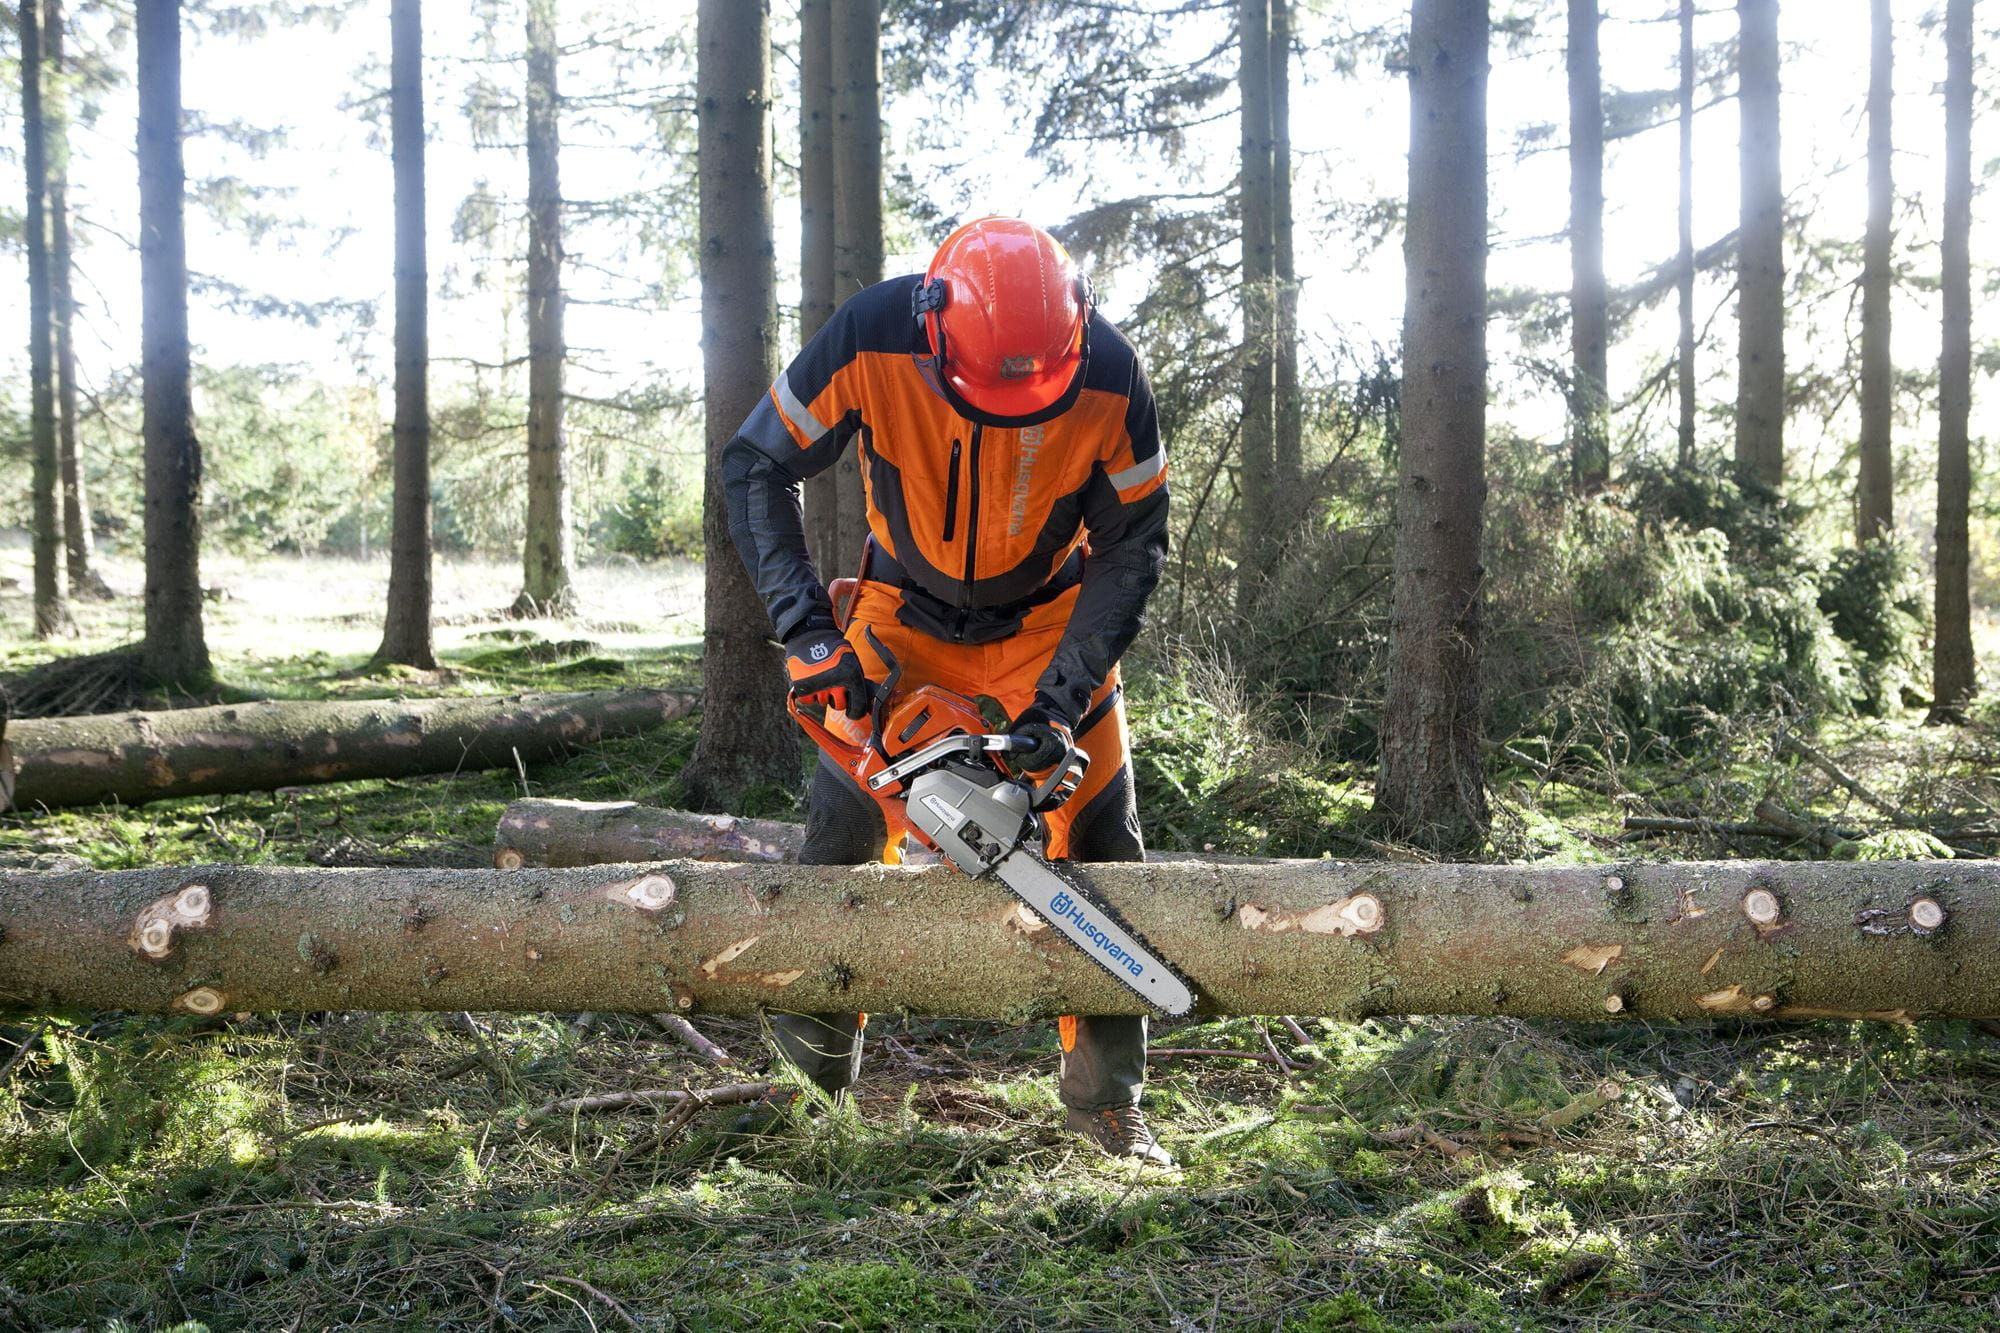 Images Working with chainsaws, part 2